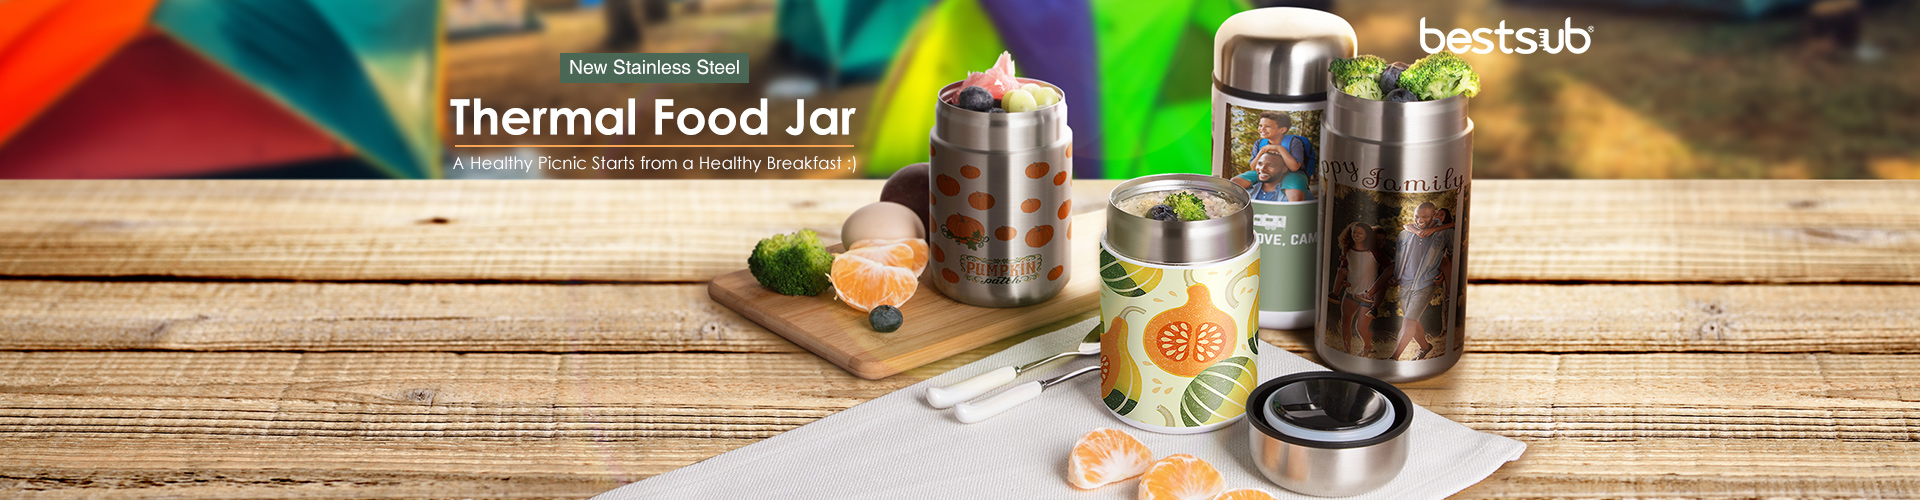 2019-10-18_New_Stainless_Steel_Thermal_Food_Jar_new_web